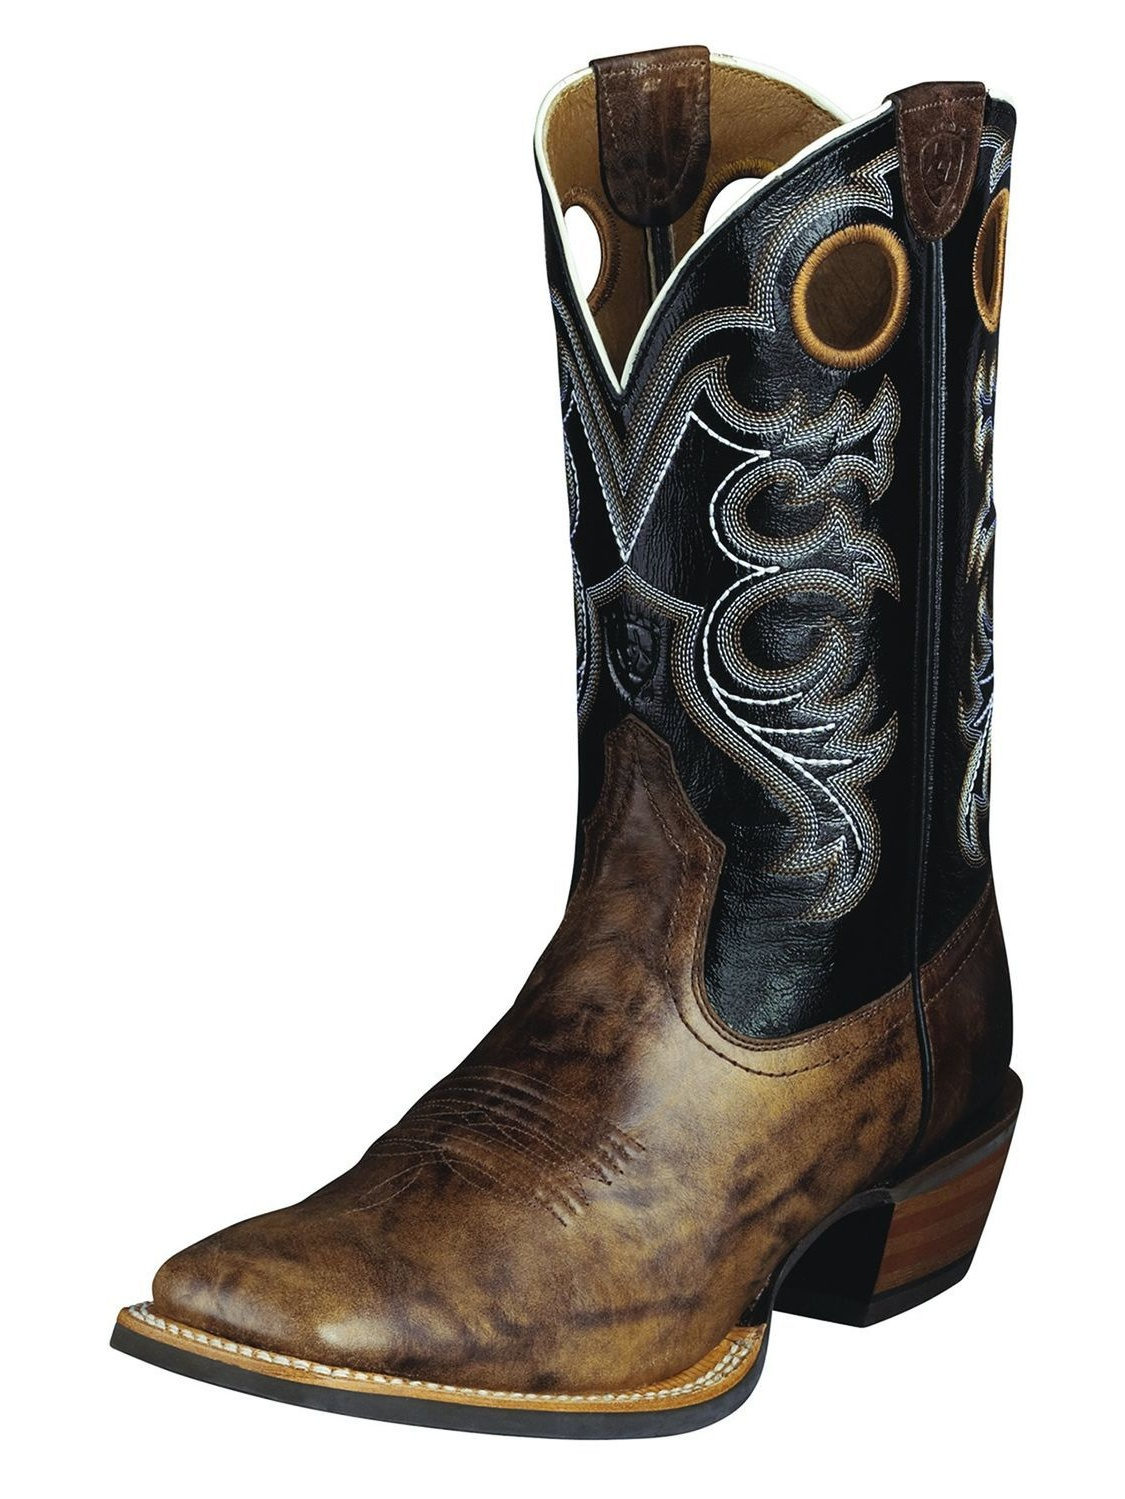 Ariat Crossfire Men 2E Round Toe Leather Black Western Boot by Ariat